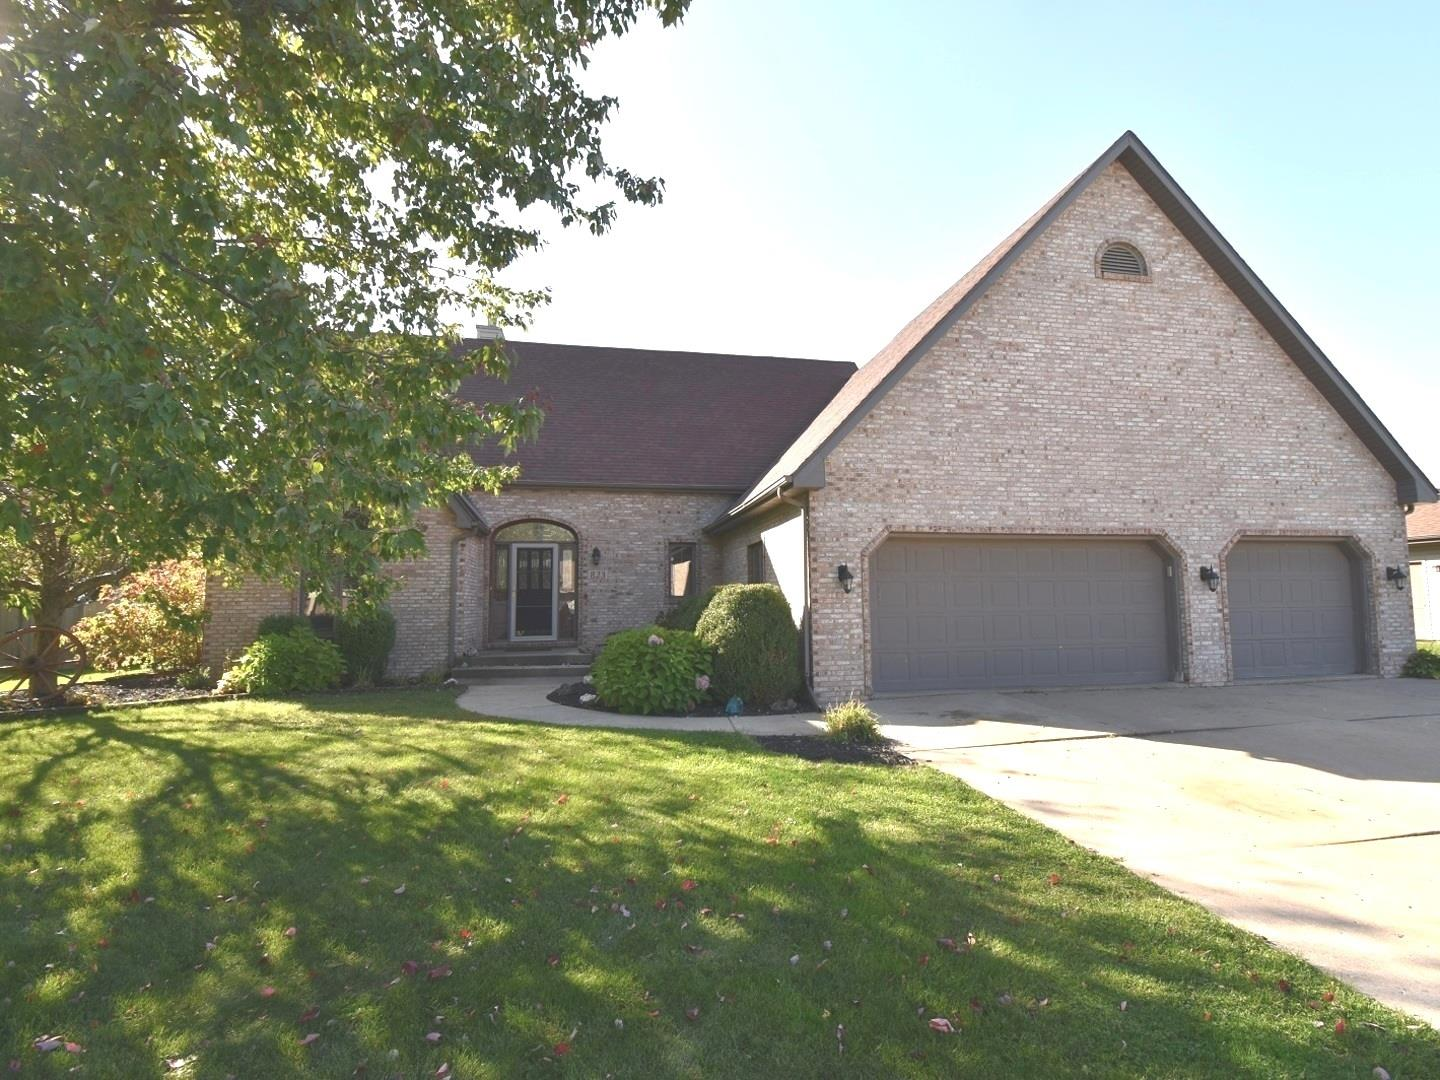 823 CINDY Lane, Sandwich, IL 60548 - #: 10905127